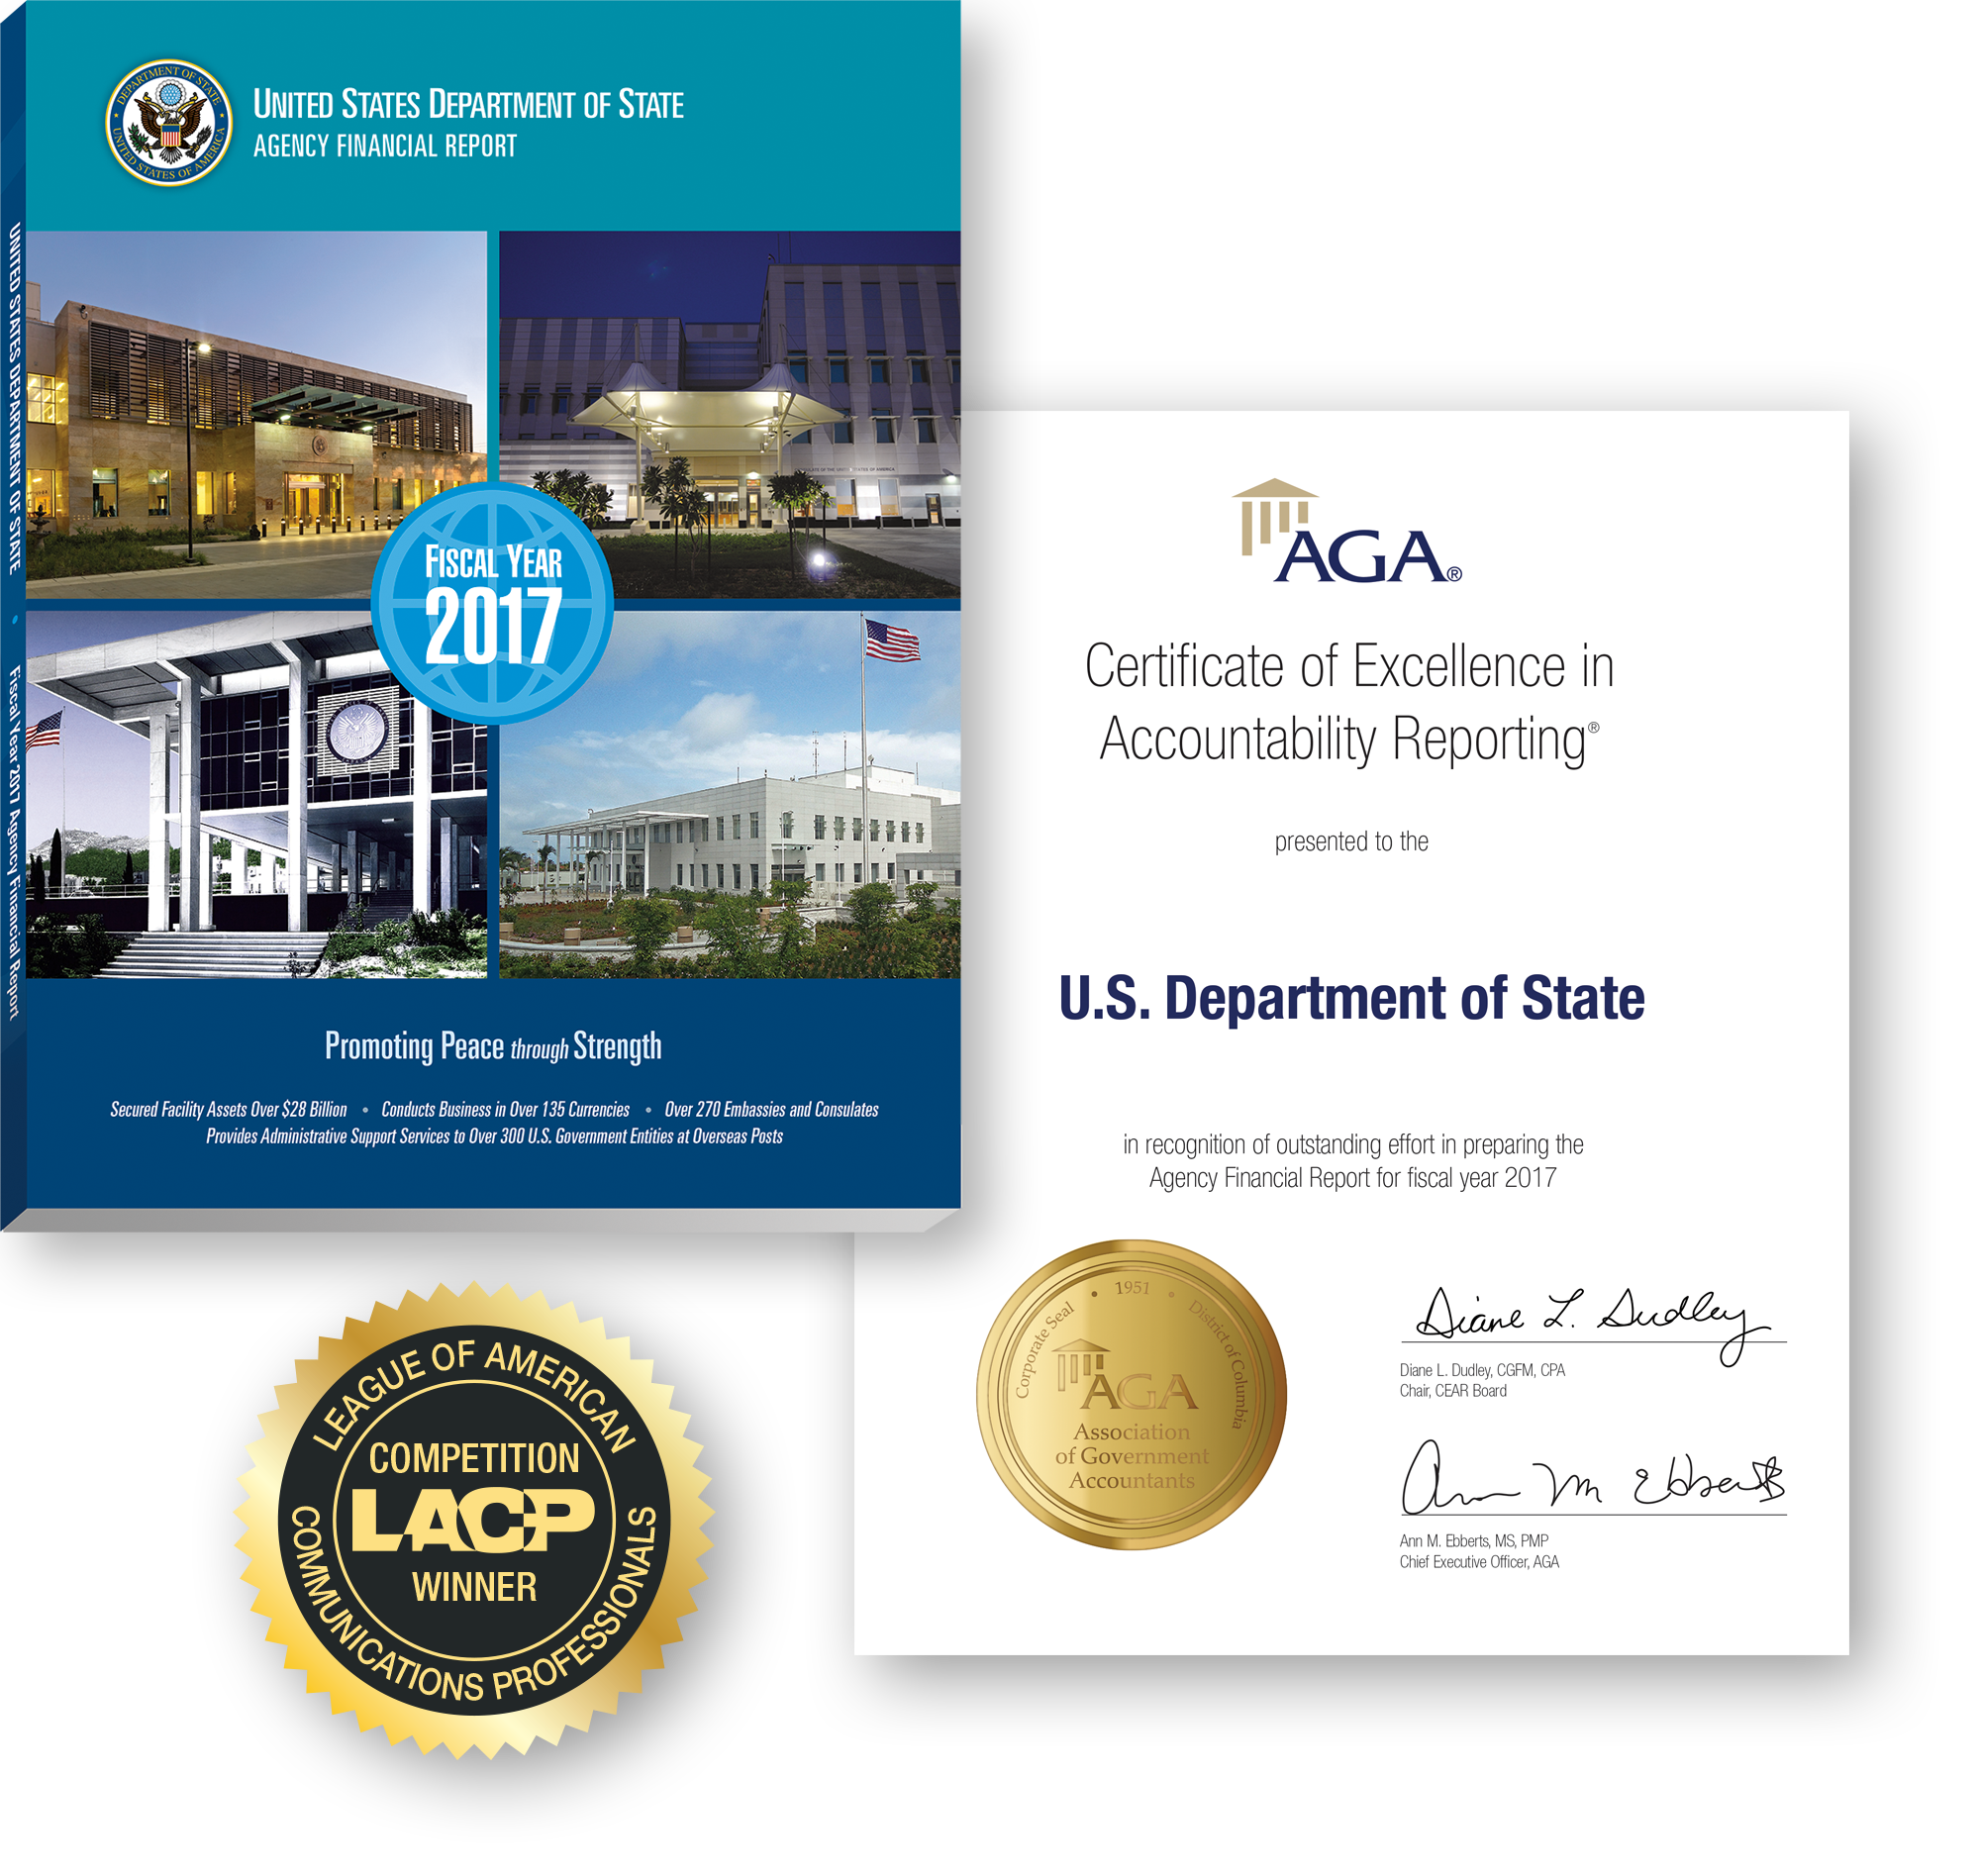 Photo showing the U.S. Department of State Fiscal Year 2017 Agency Financial Report cover, the Certificate of Excellence in Accountability Reporting award presented to the Department of State for its Fiscal Year 2017 Agency Financial Report, and the League of American Communications Professionals Competition Winner seal presented to the Department of State for that report.